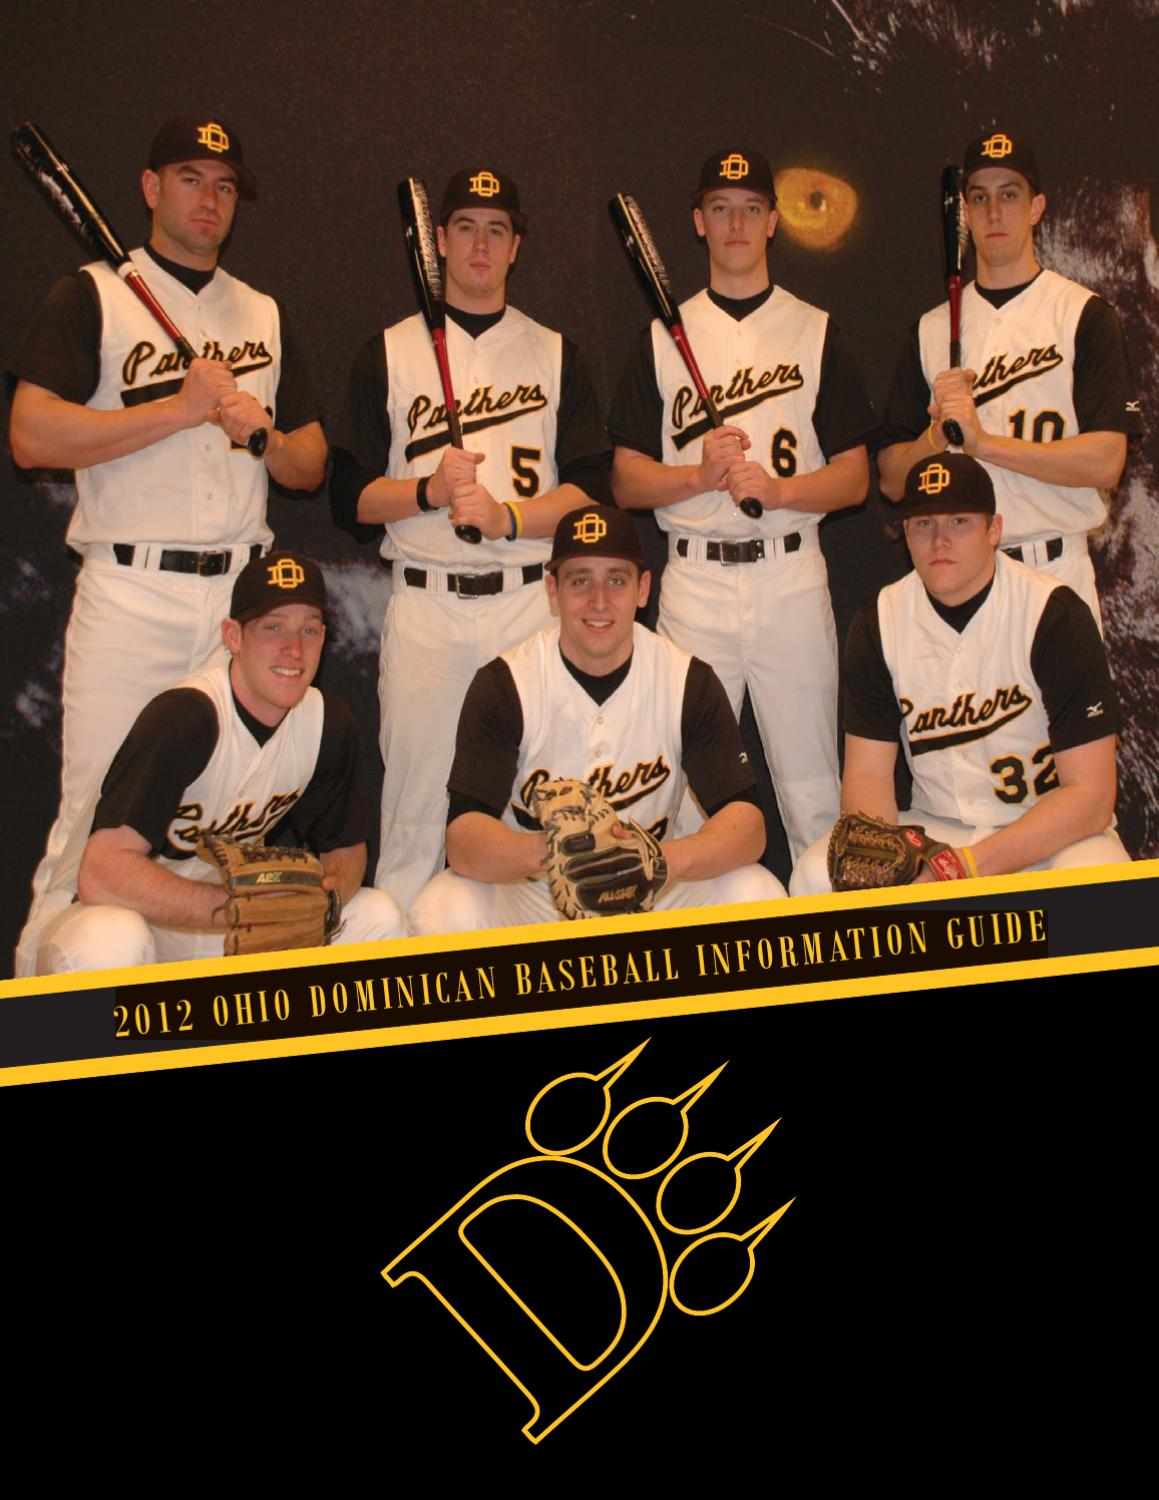 2012 ohio dominican baseball information guide by ohio dominican2012 ohio dominican baseball information guide by ohio dominican university athletics issuu